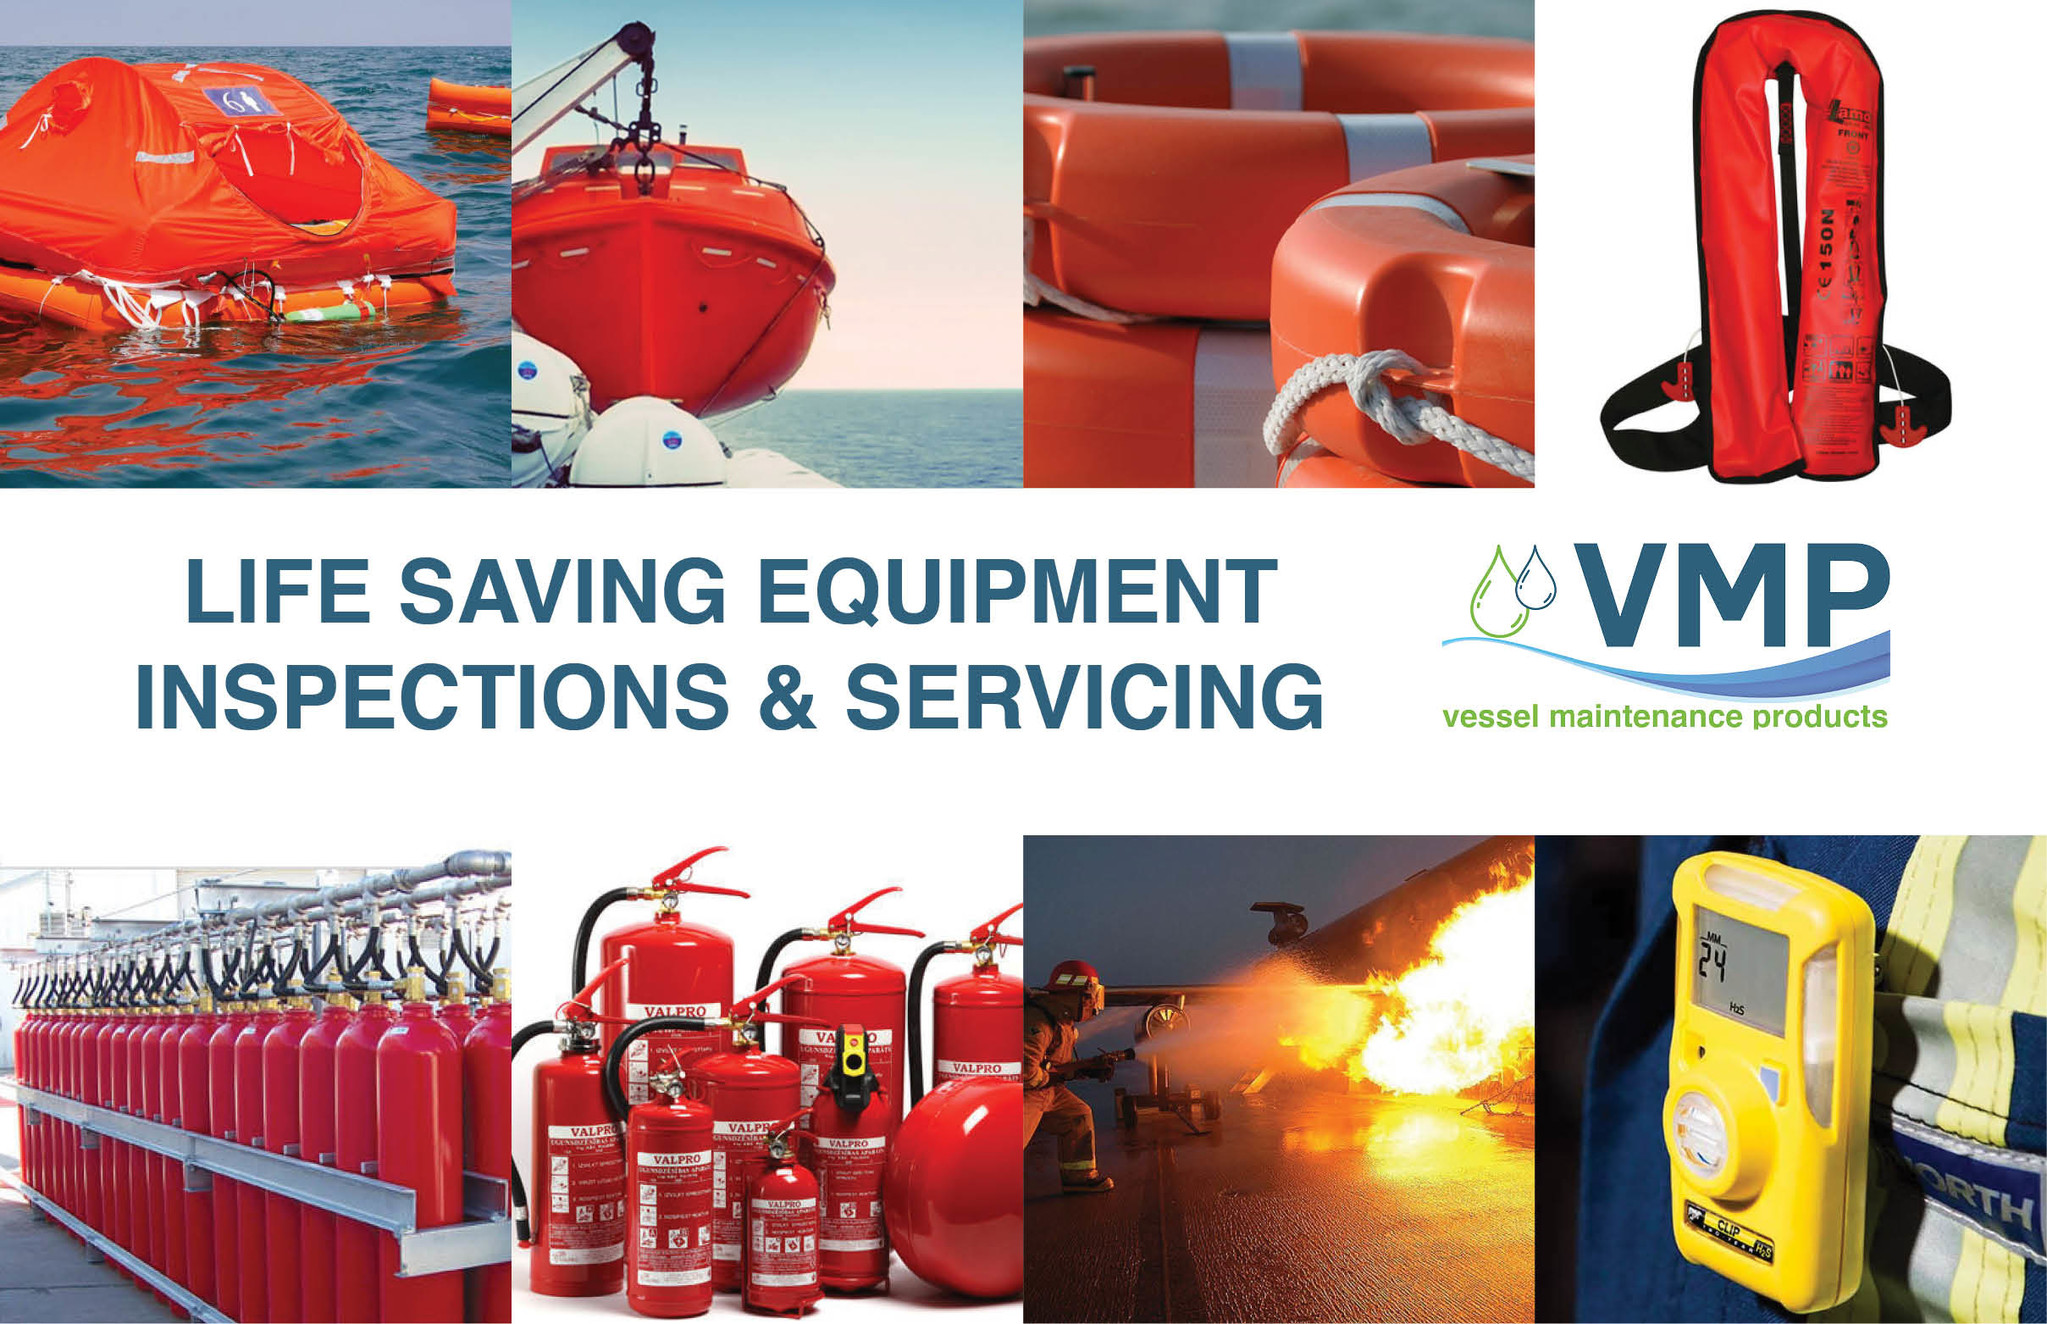 VMP Safety equipment